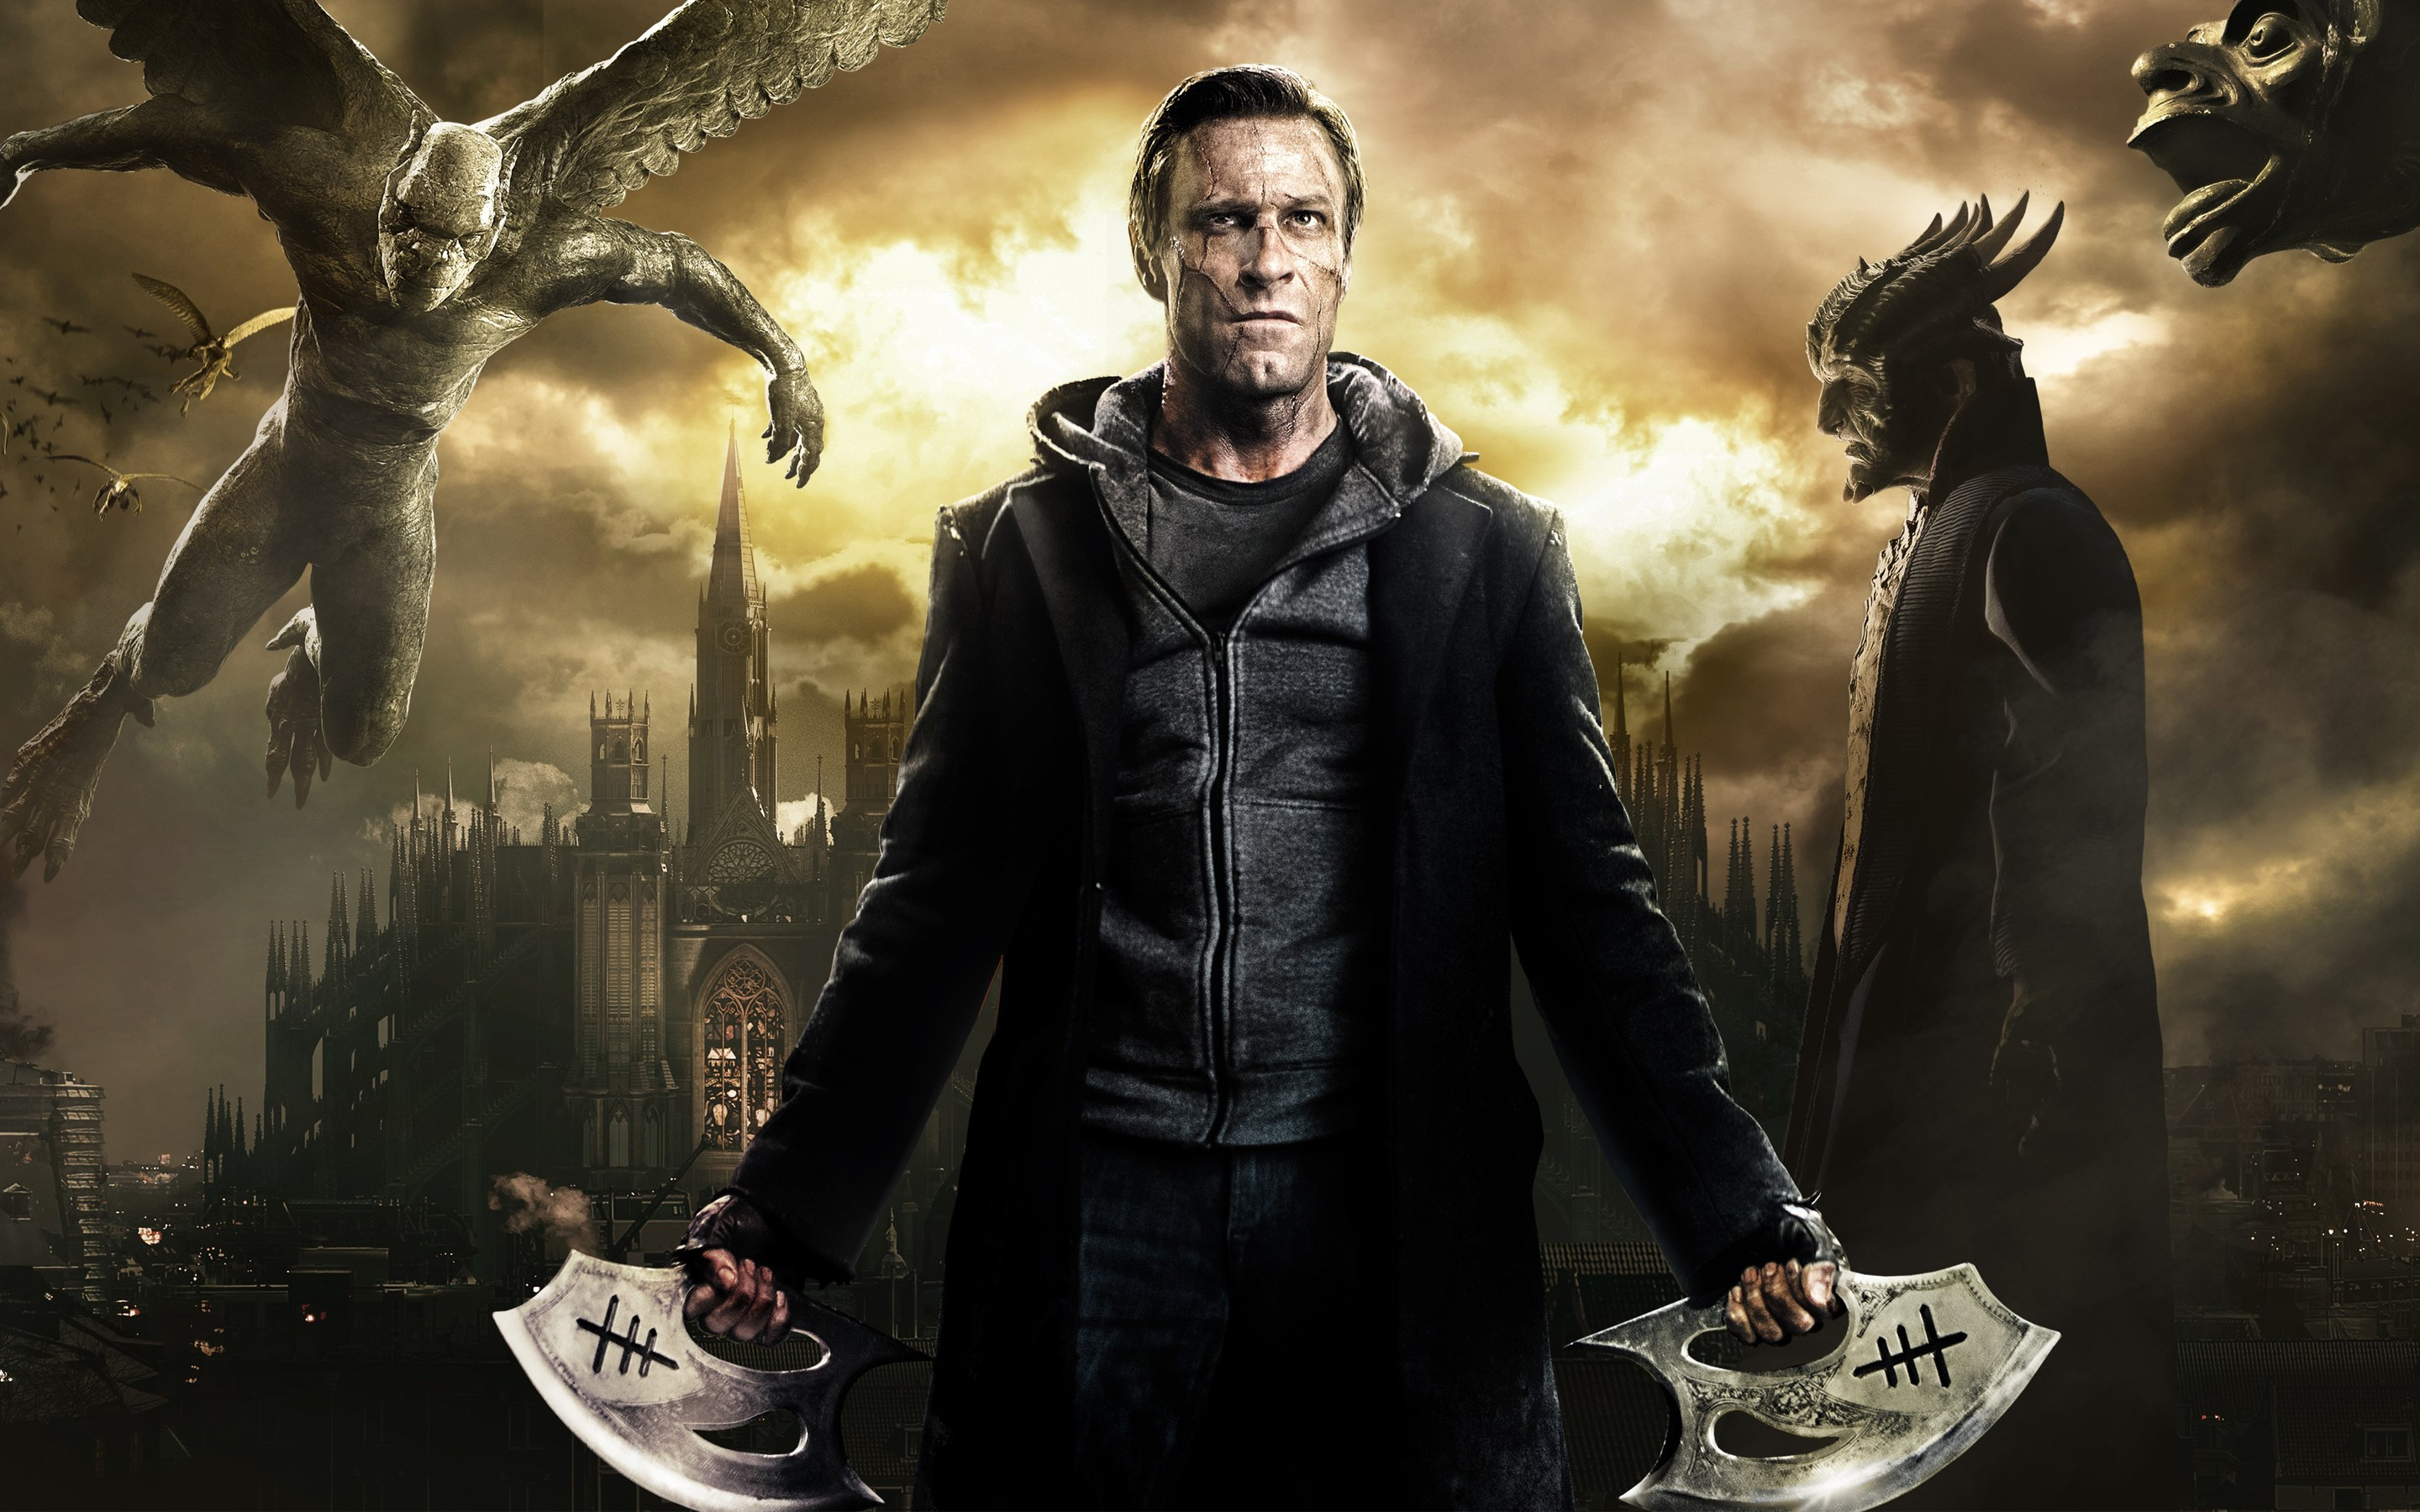 I, Frankenstein Review: A Lifeless Corpse